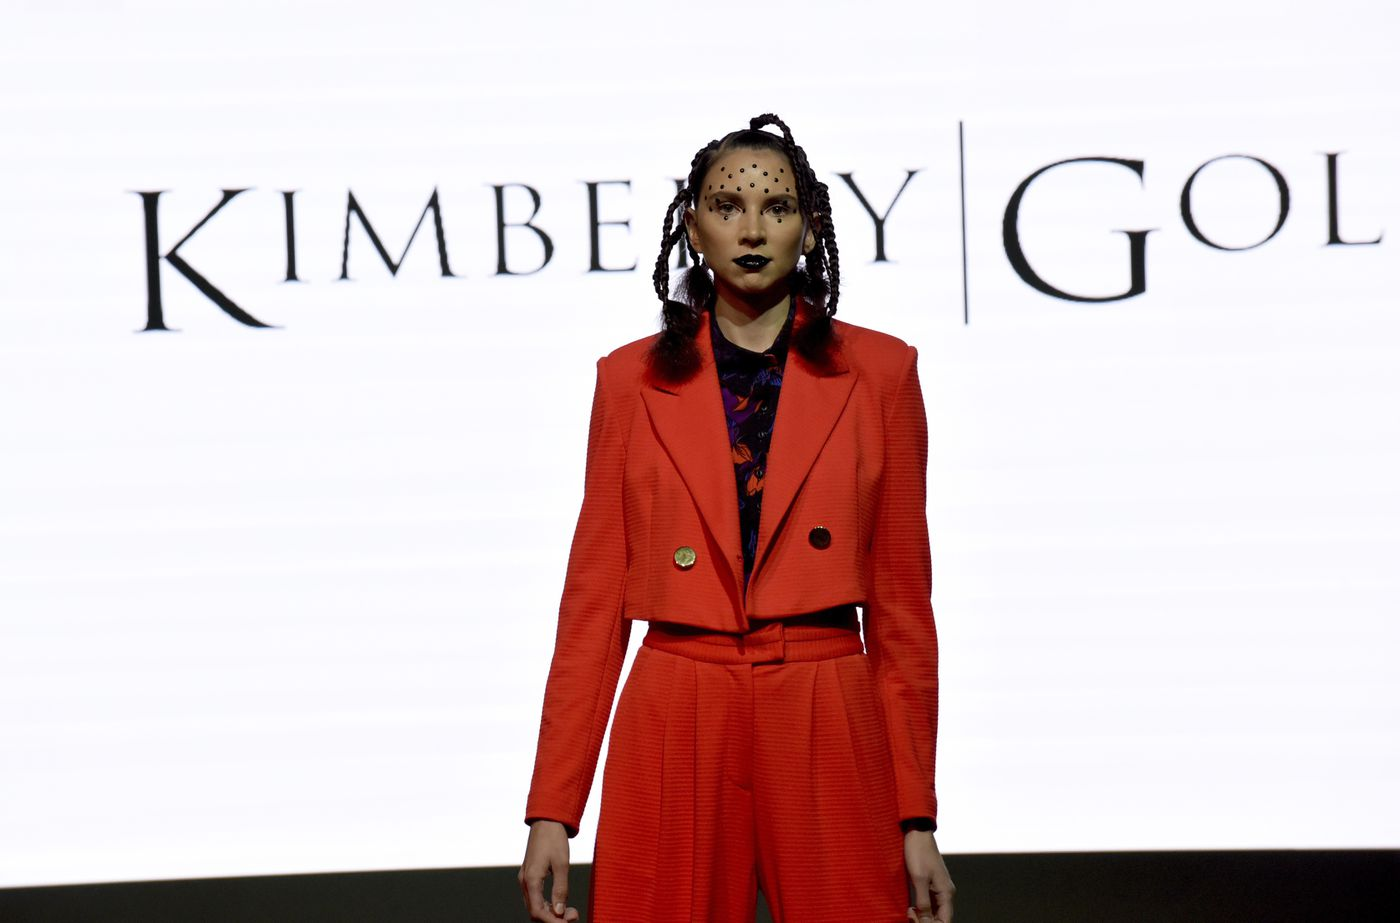 93147978d25 The Kimberly Goldson collection is modeled at the Harlem Fashion Row show  and awards ceremony before